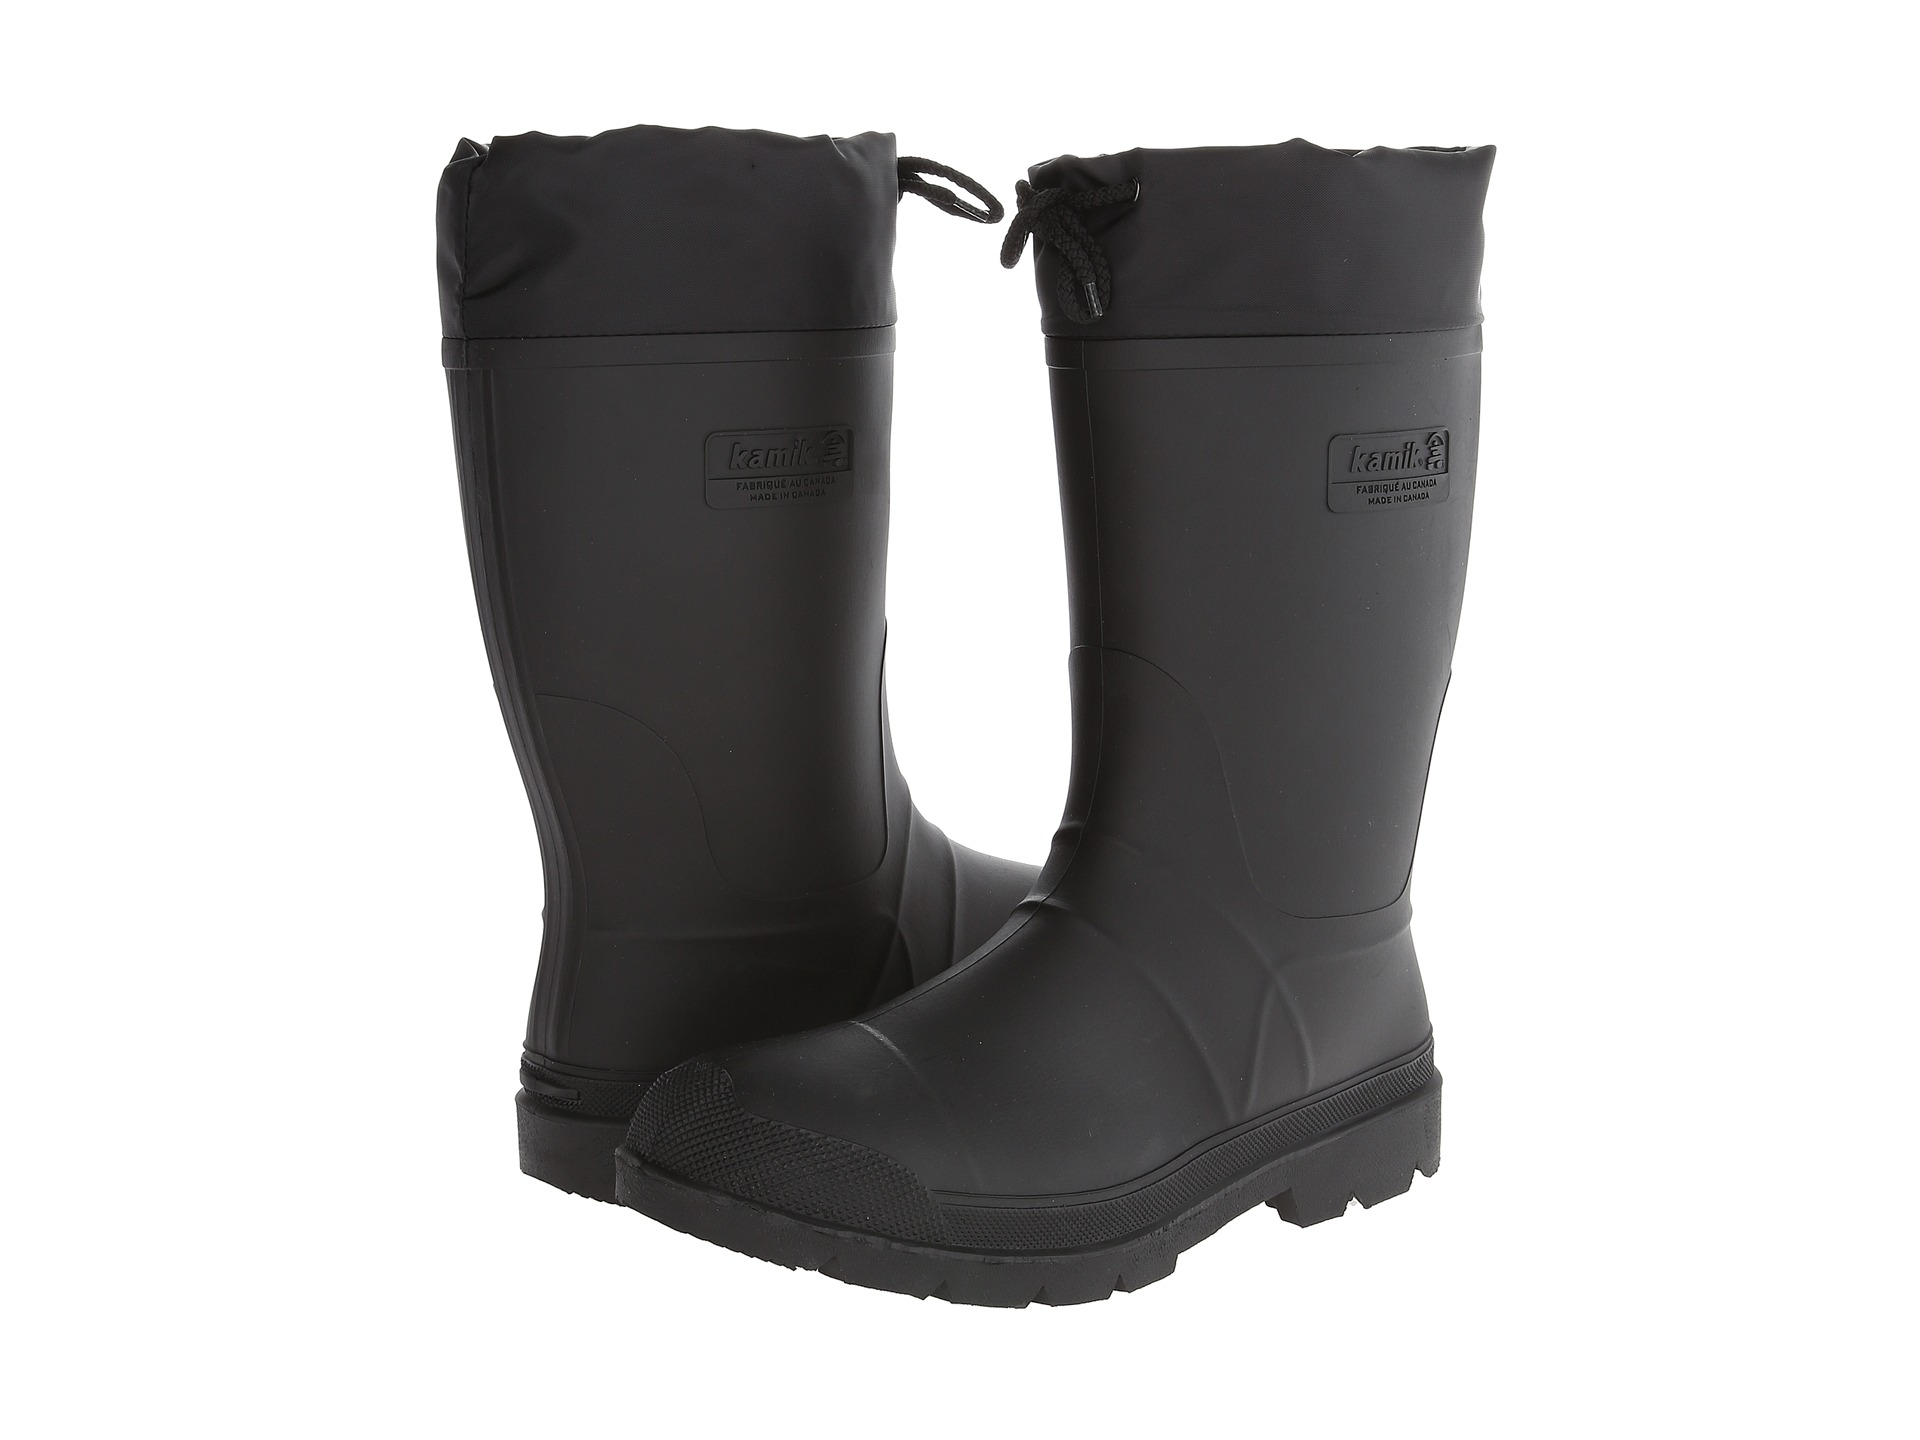 Boots, Rain Boot, Men | Shipped Free at Zappos